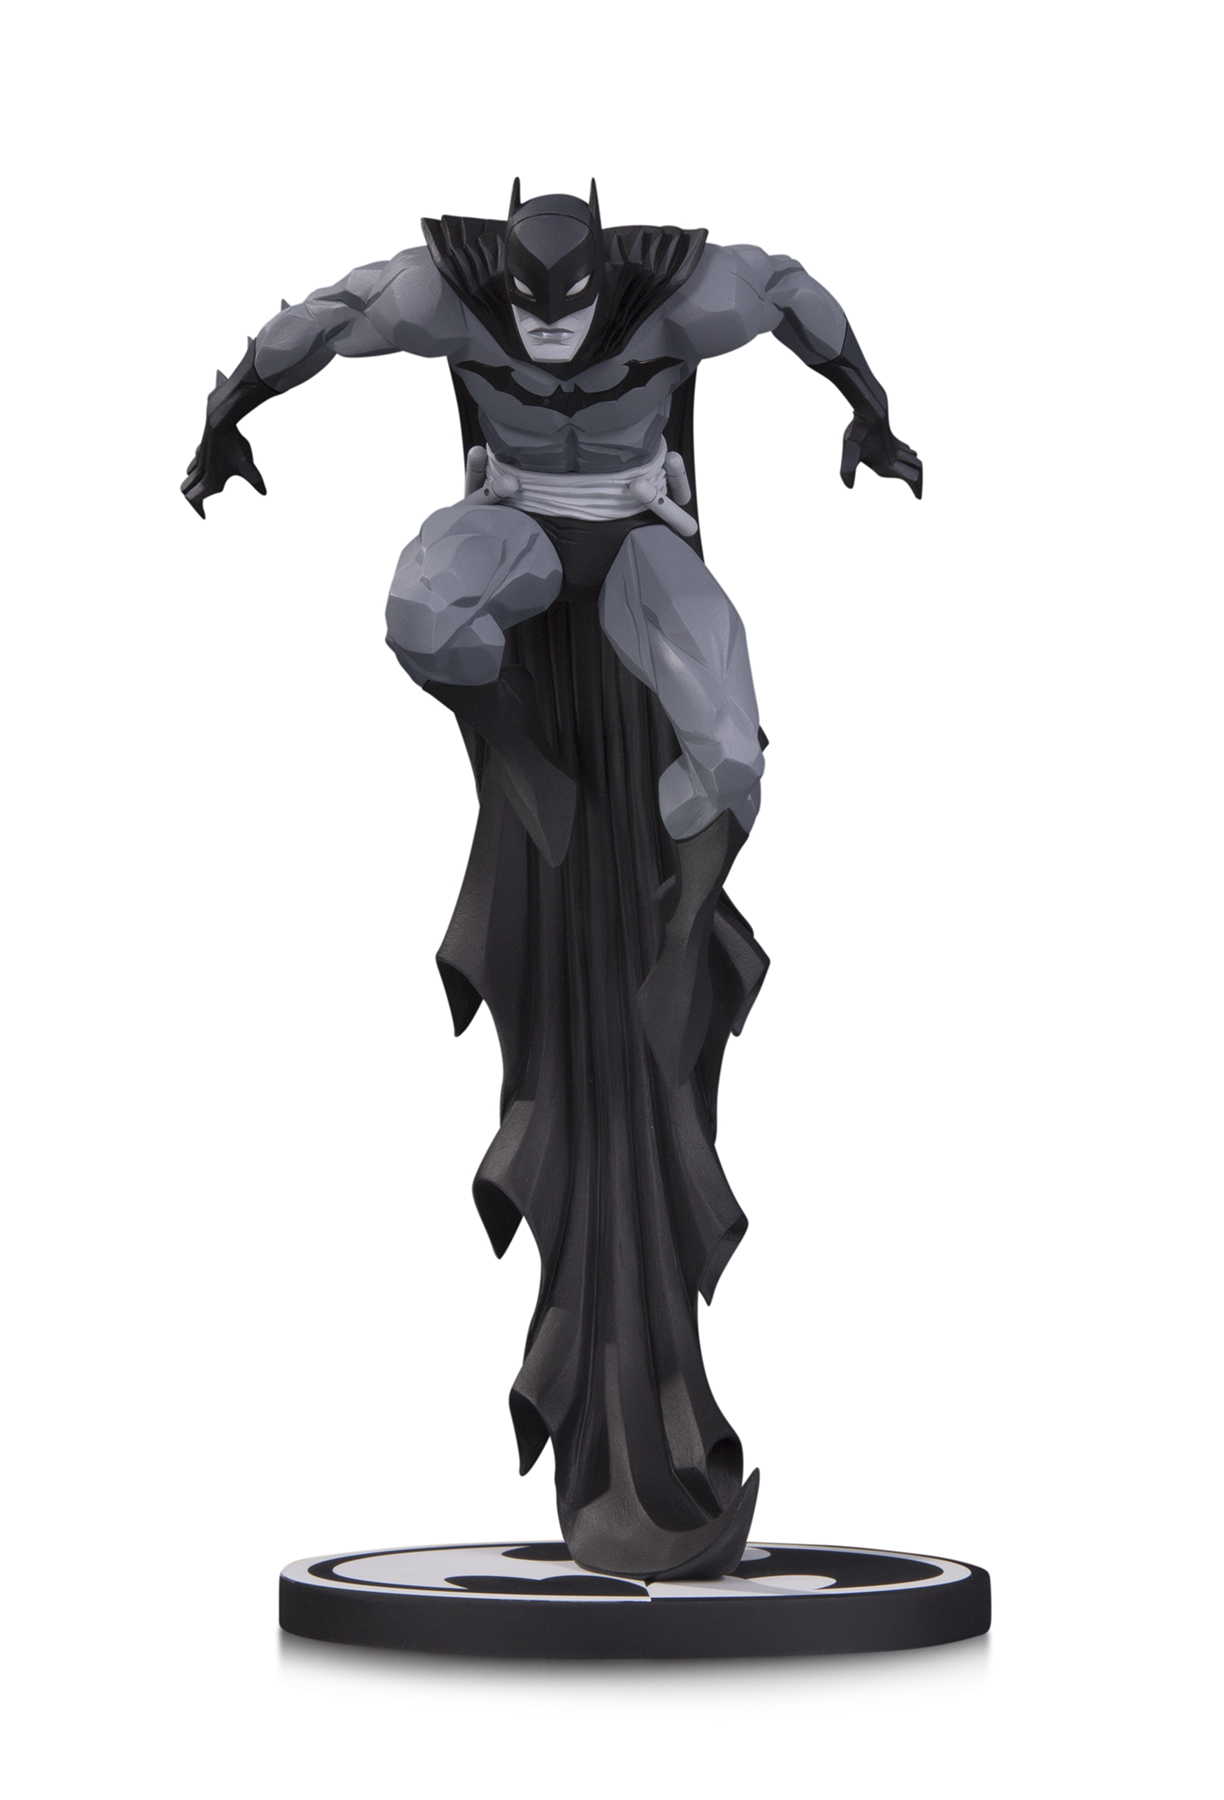 Two New DC Collectibles Statues Hit Comic Shops Previews